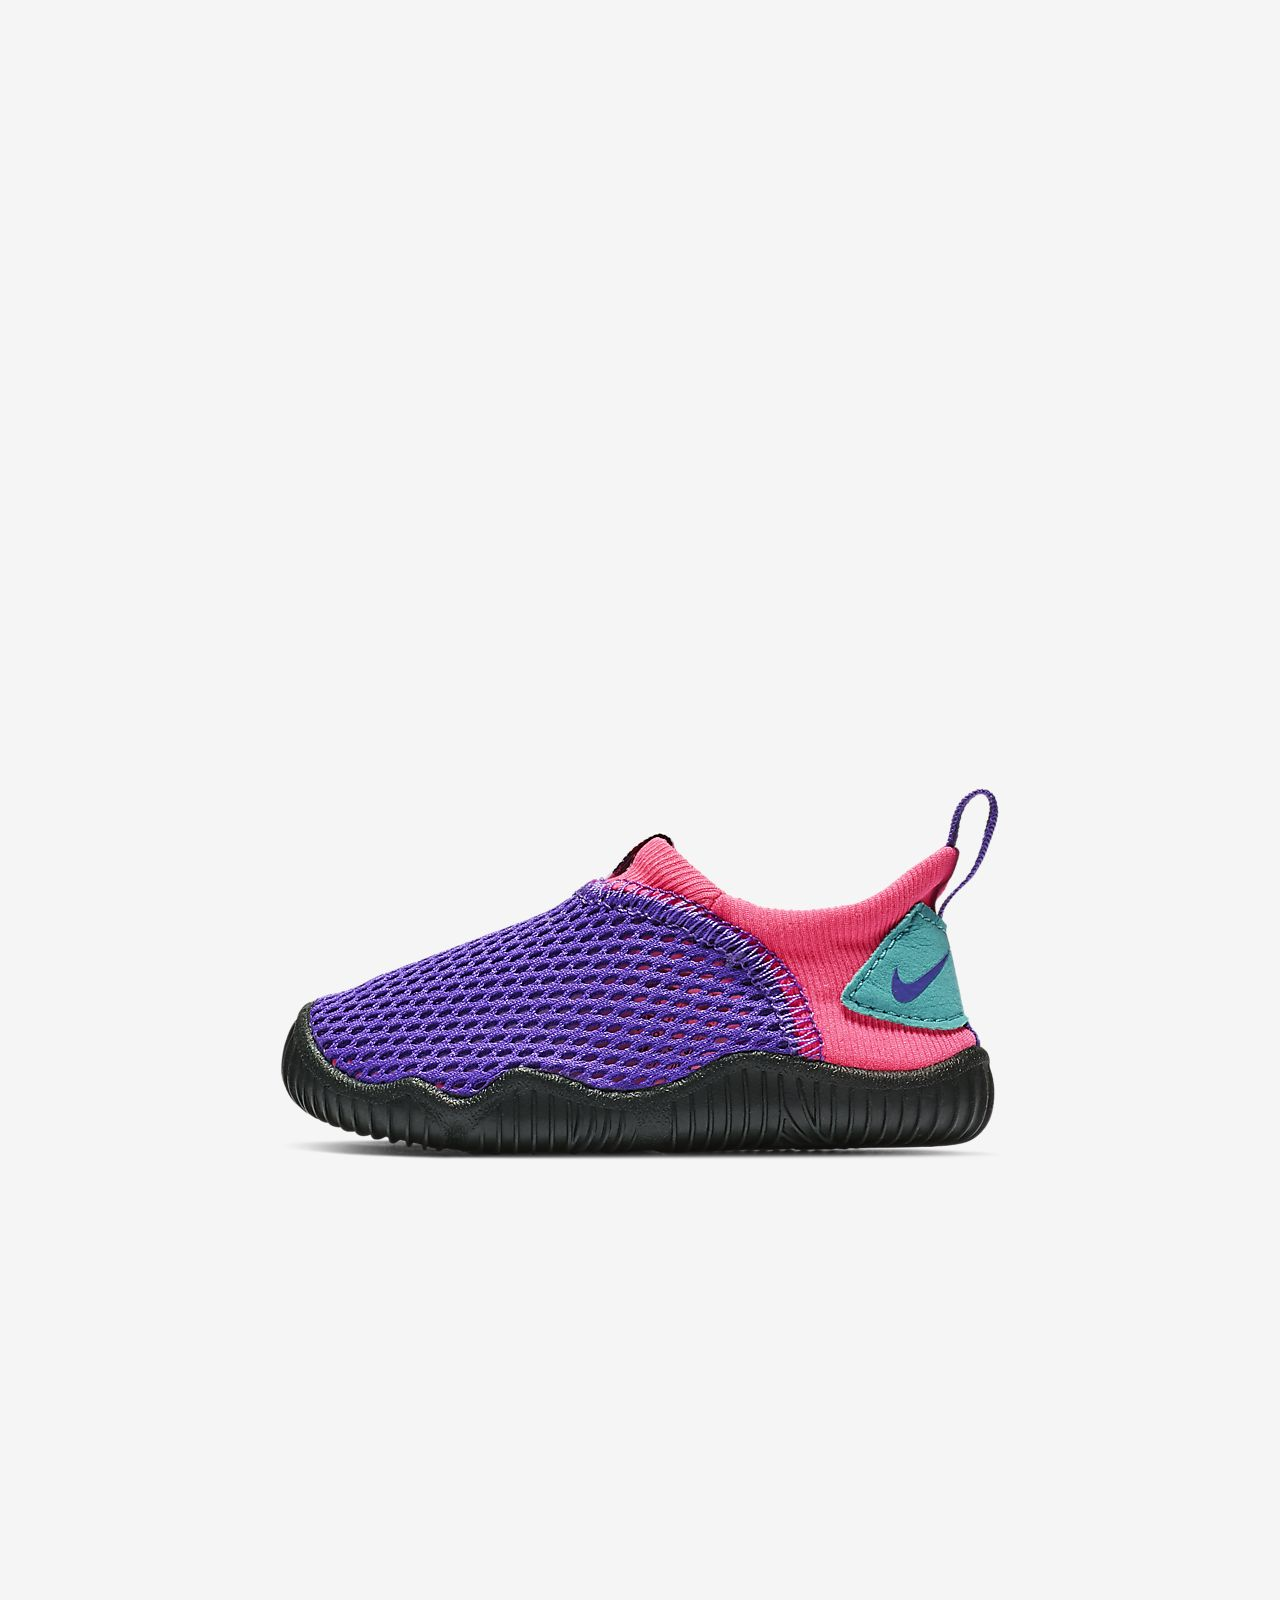 Nike Aqua Sock 360 Now Baby/Toddler Shoe